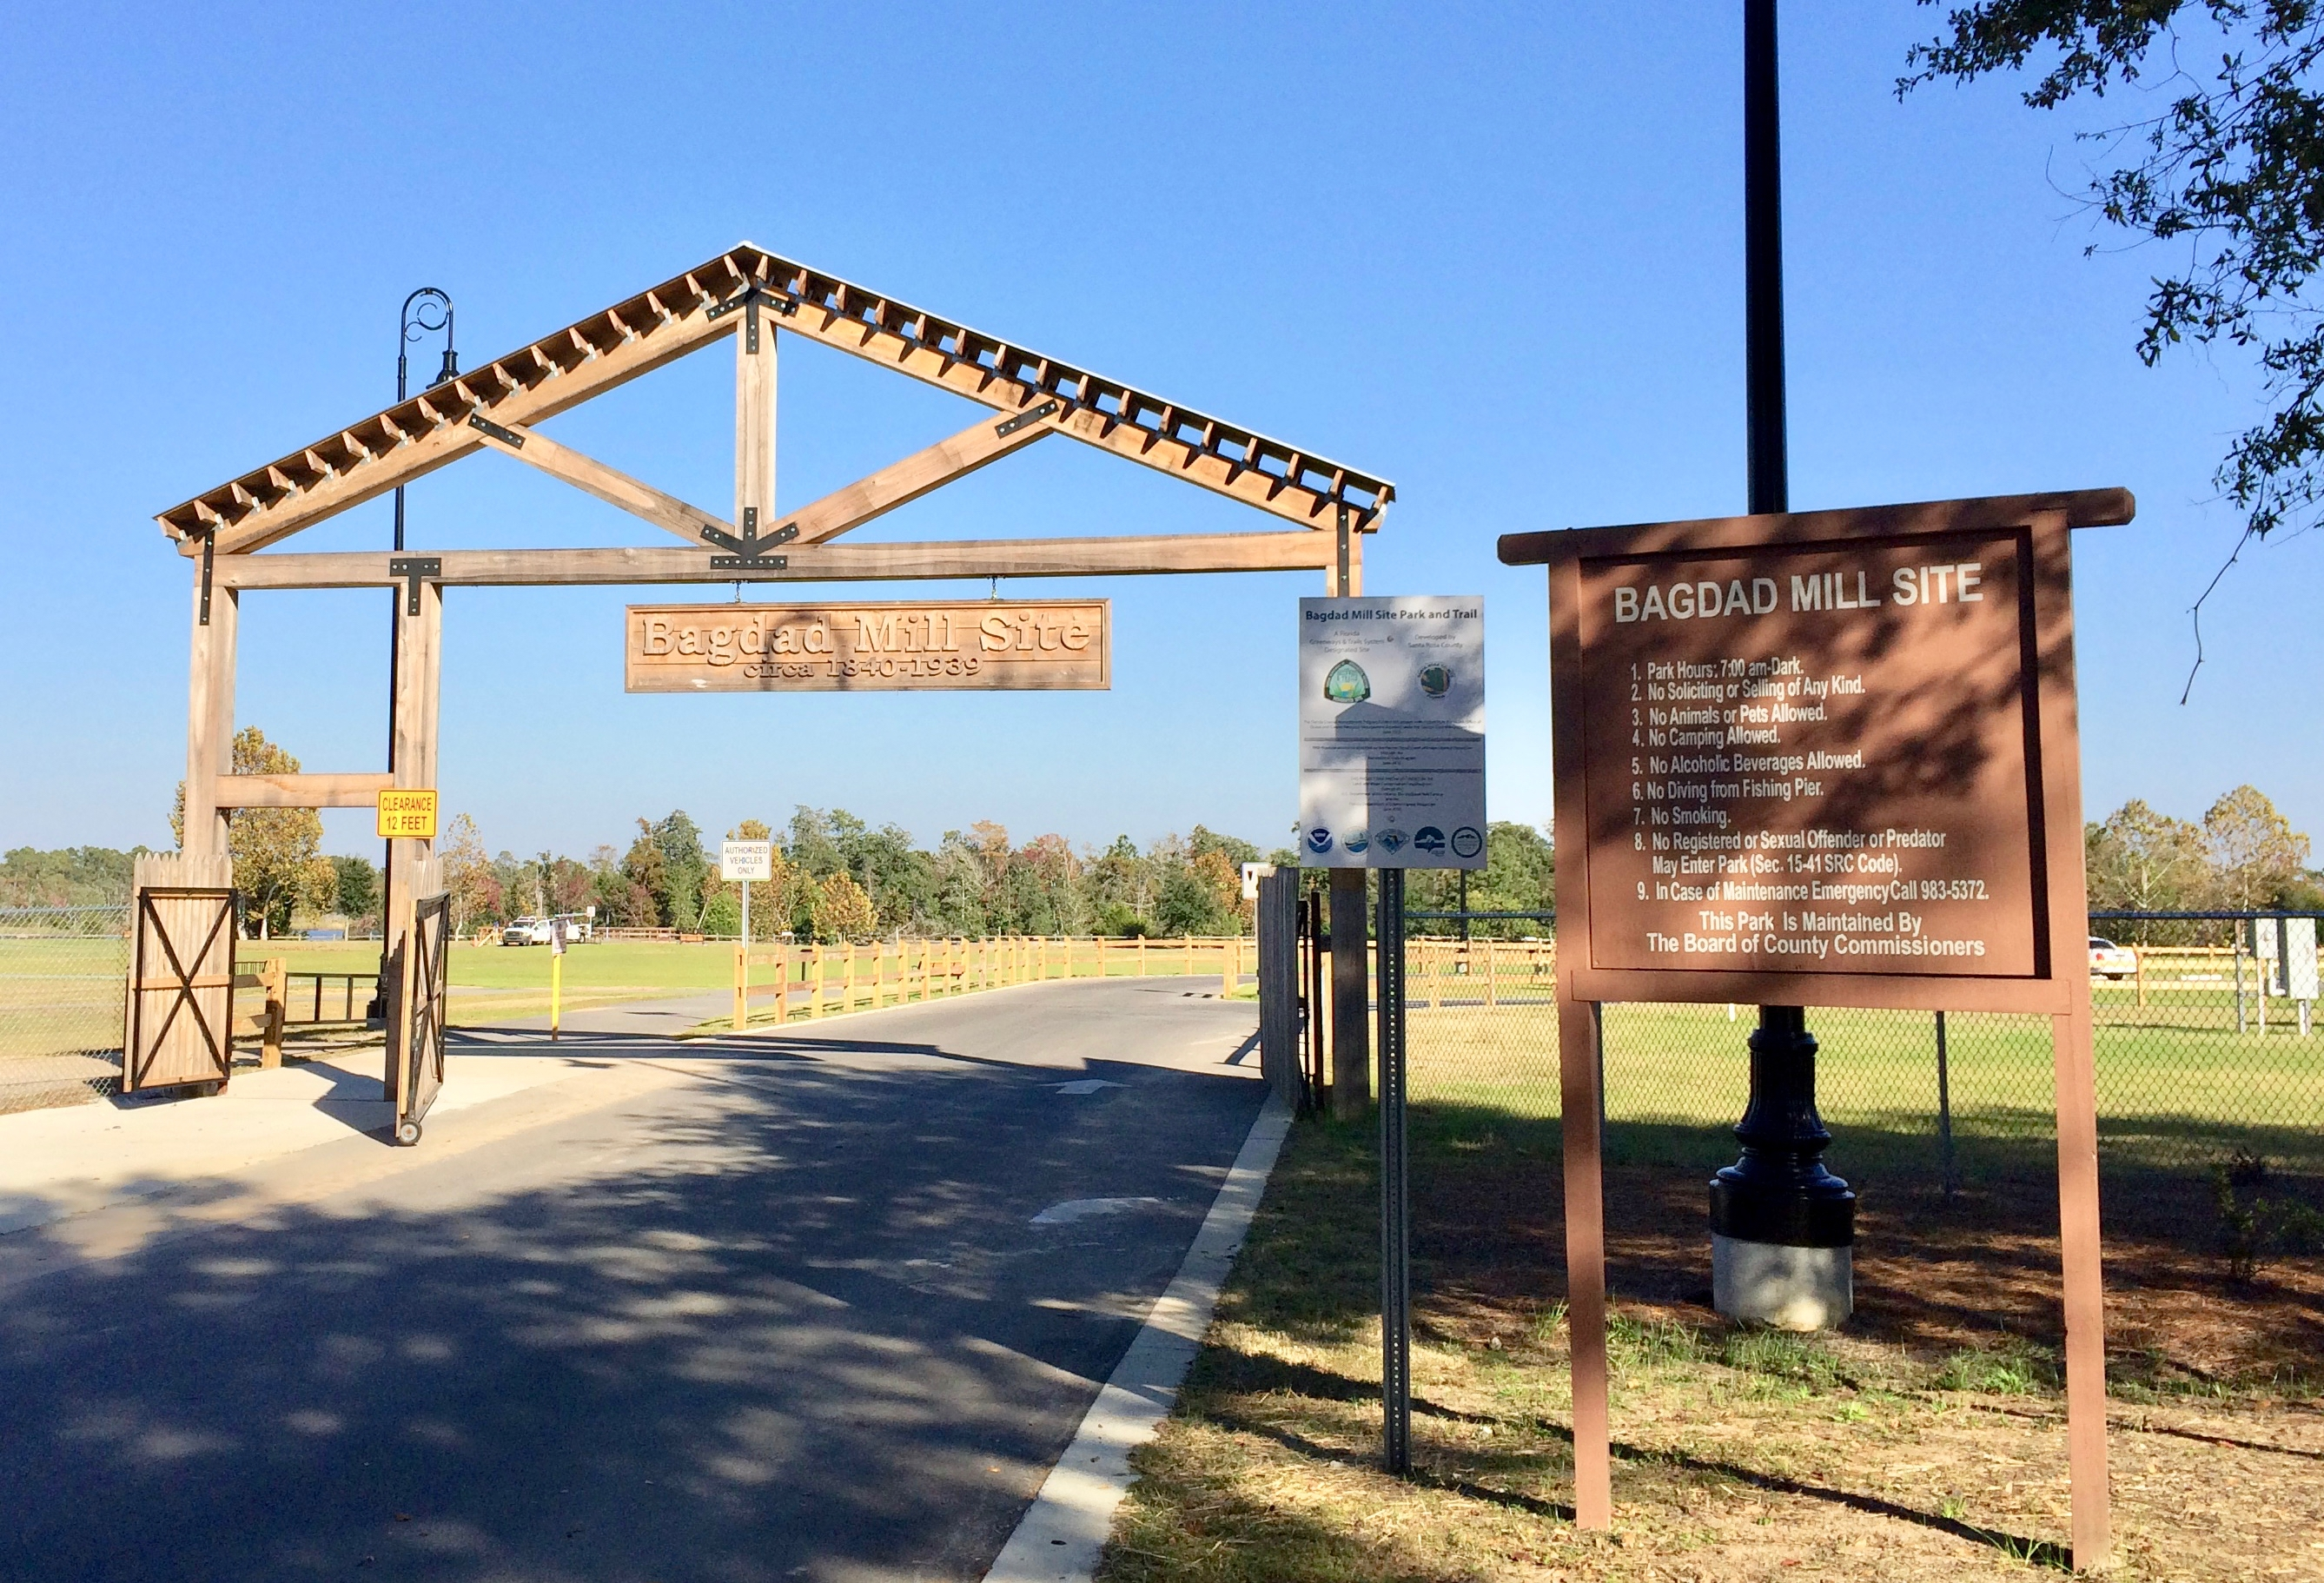 Bagdad Mill Site Park entrance